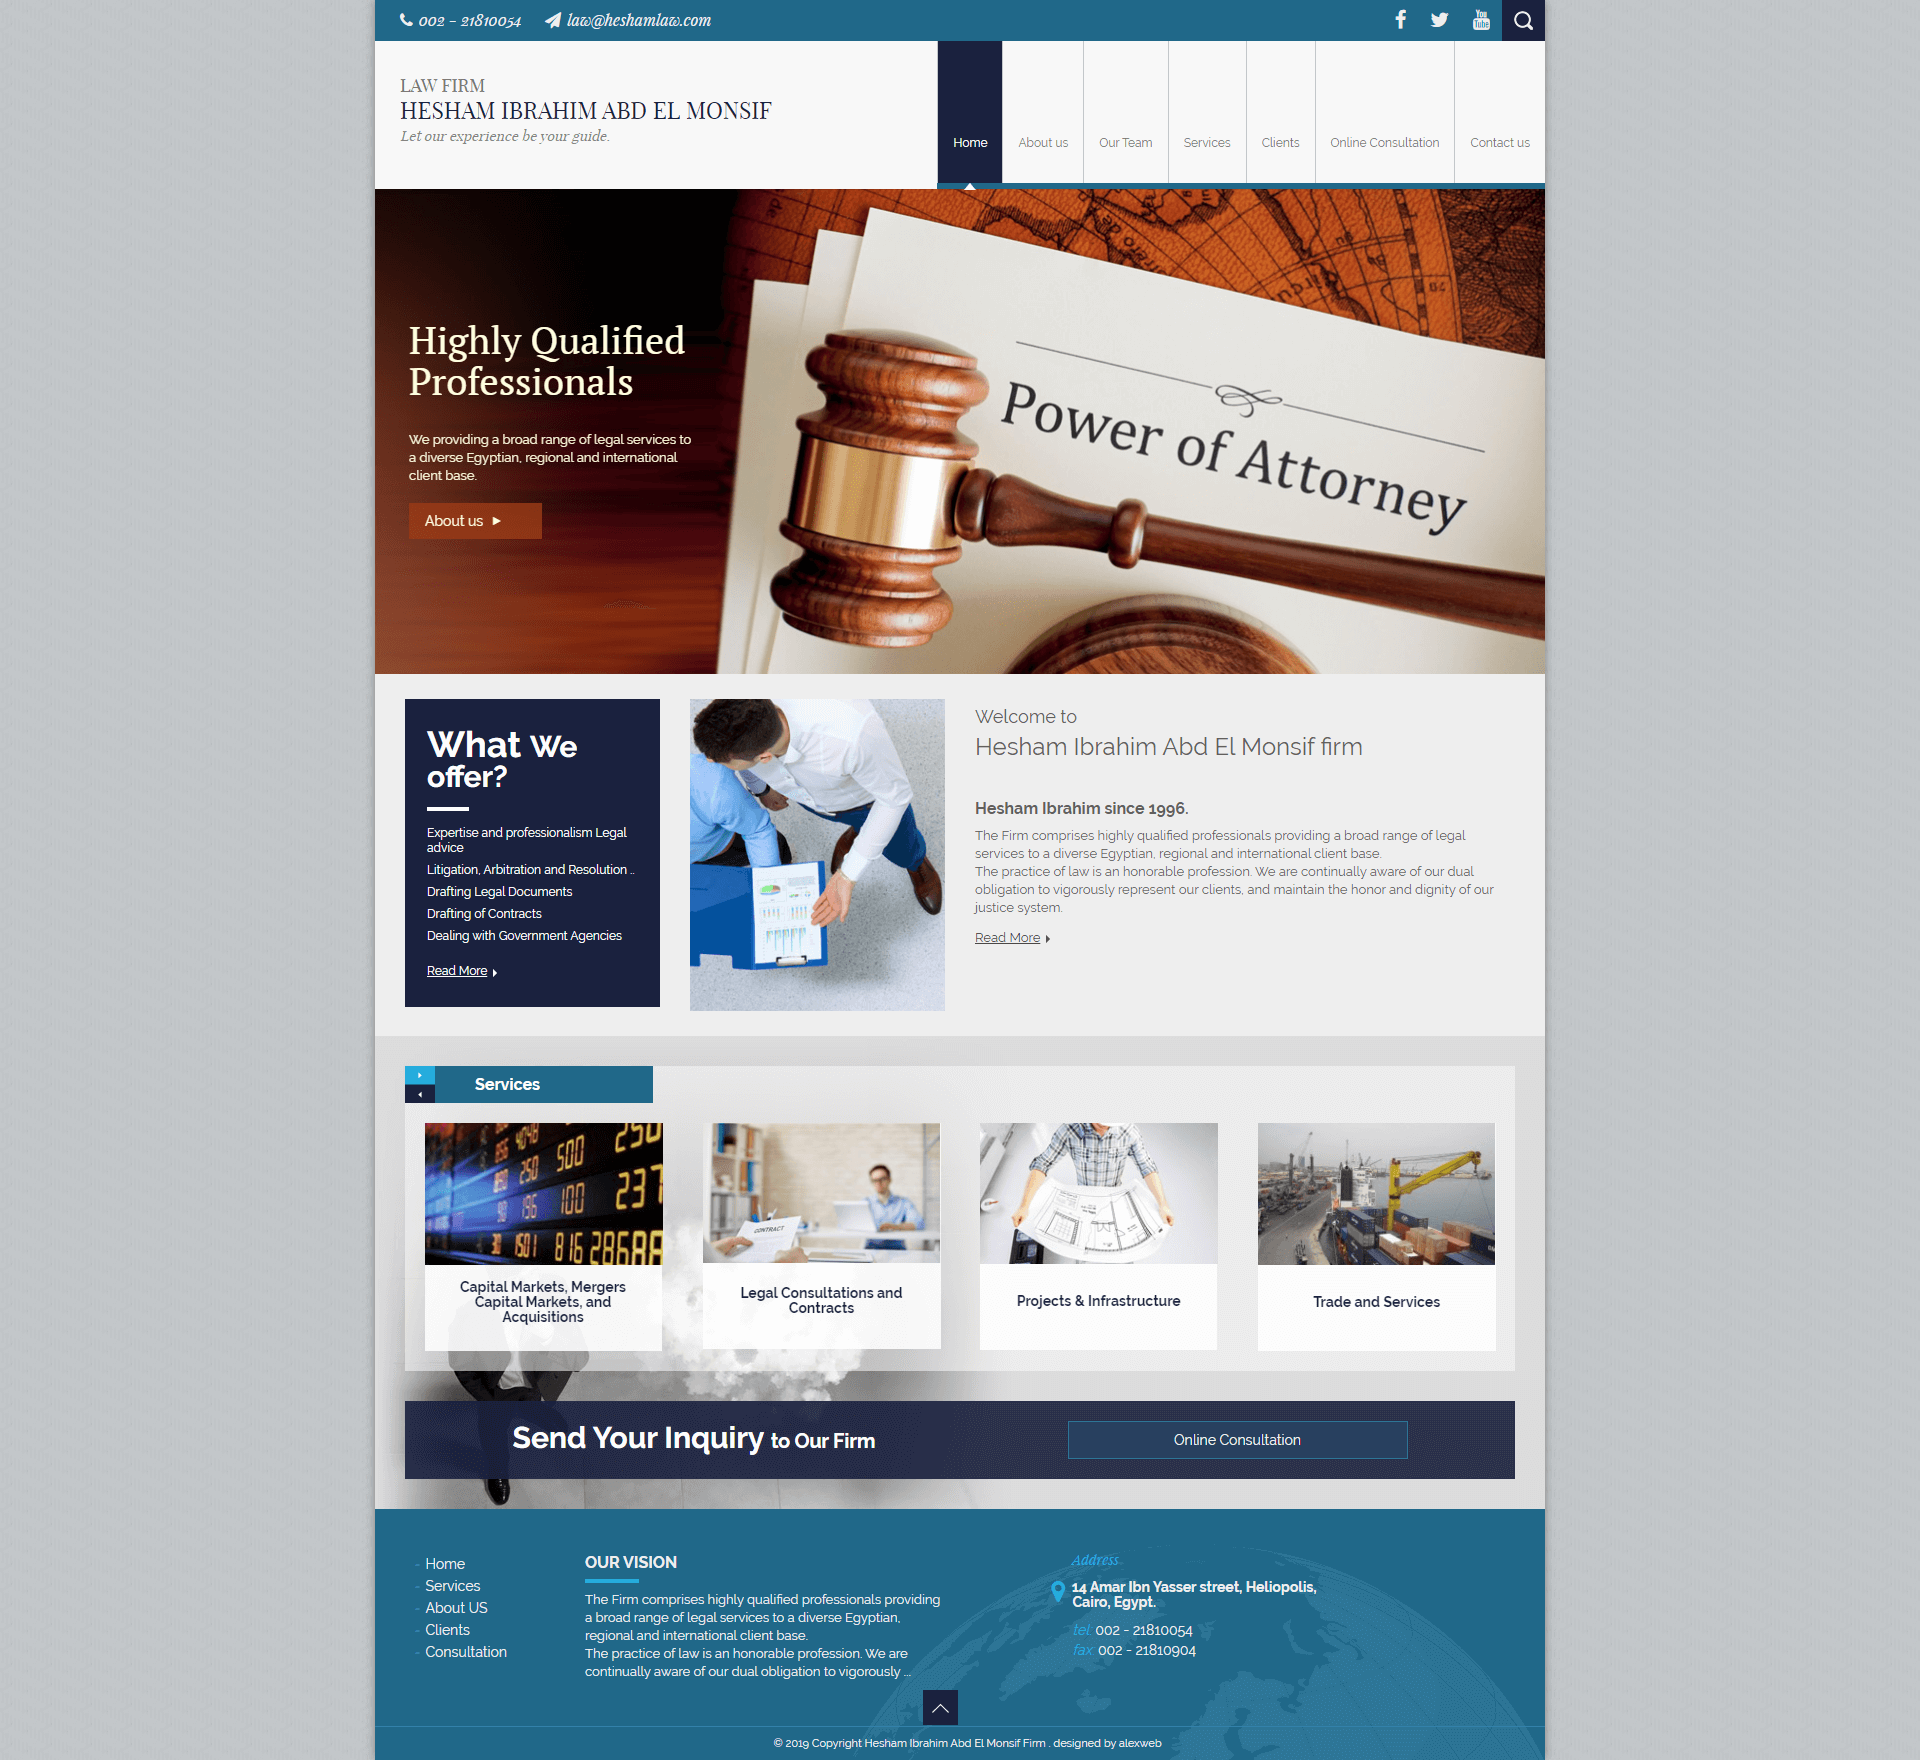 Alex Web Design and development company clients in Egypt Hesham Ibrahim Law Firm